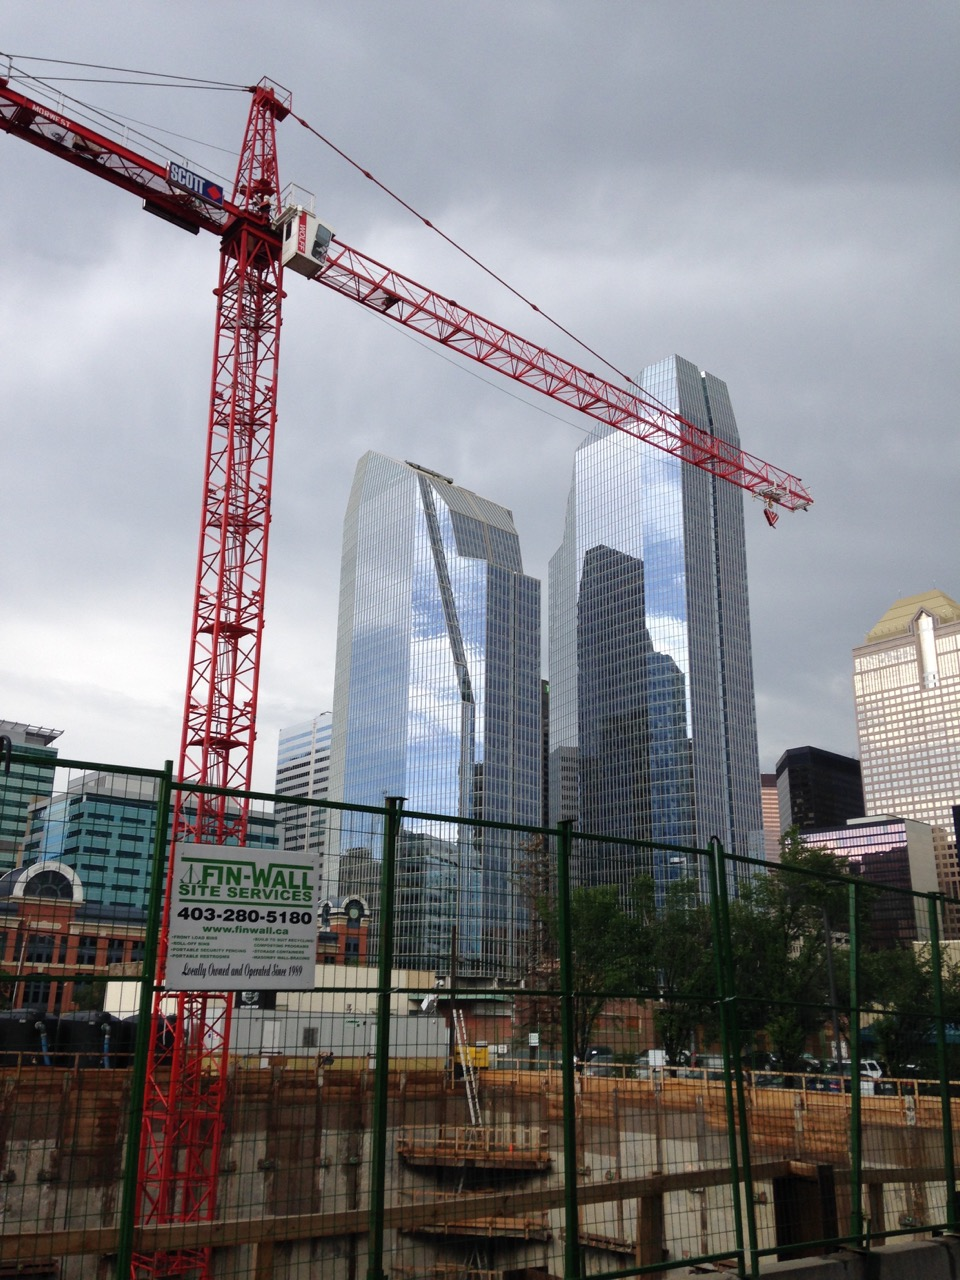 6th and Tenth Condo construction